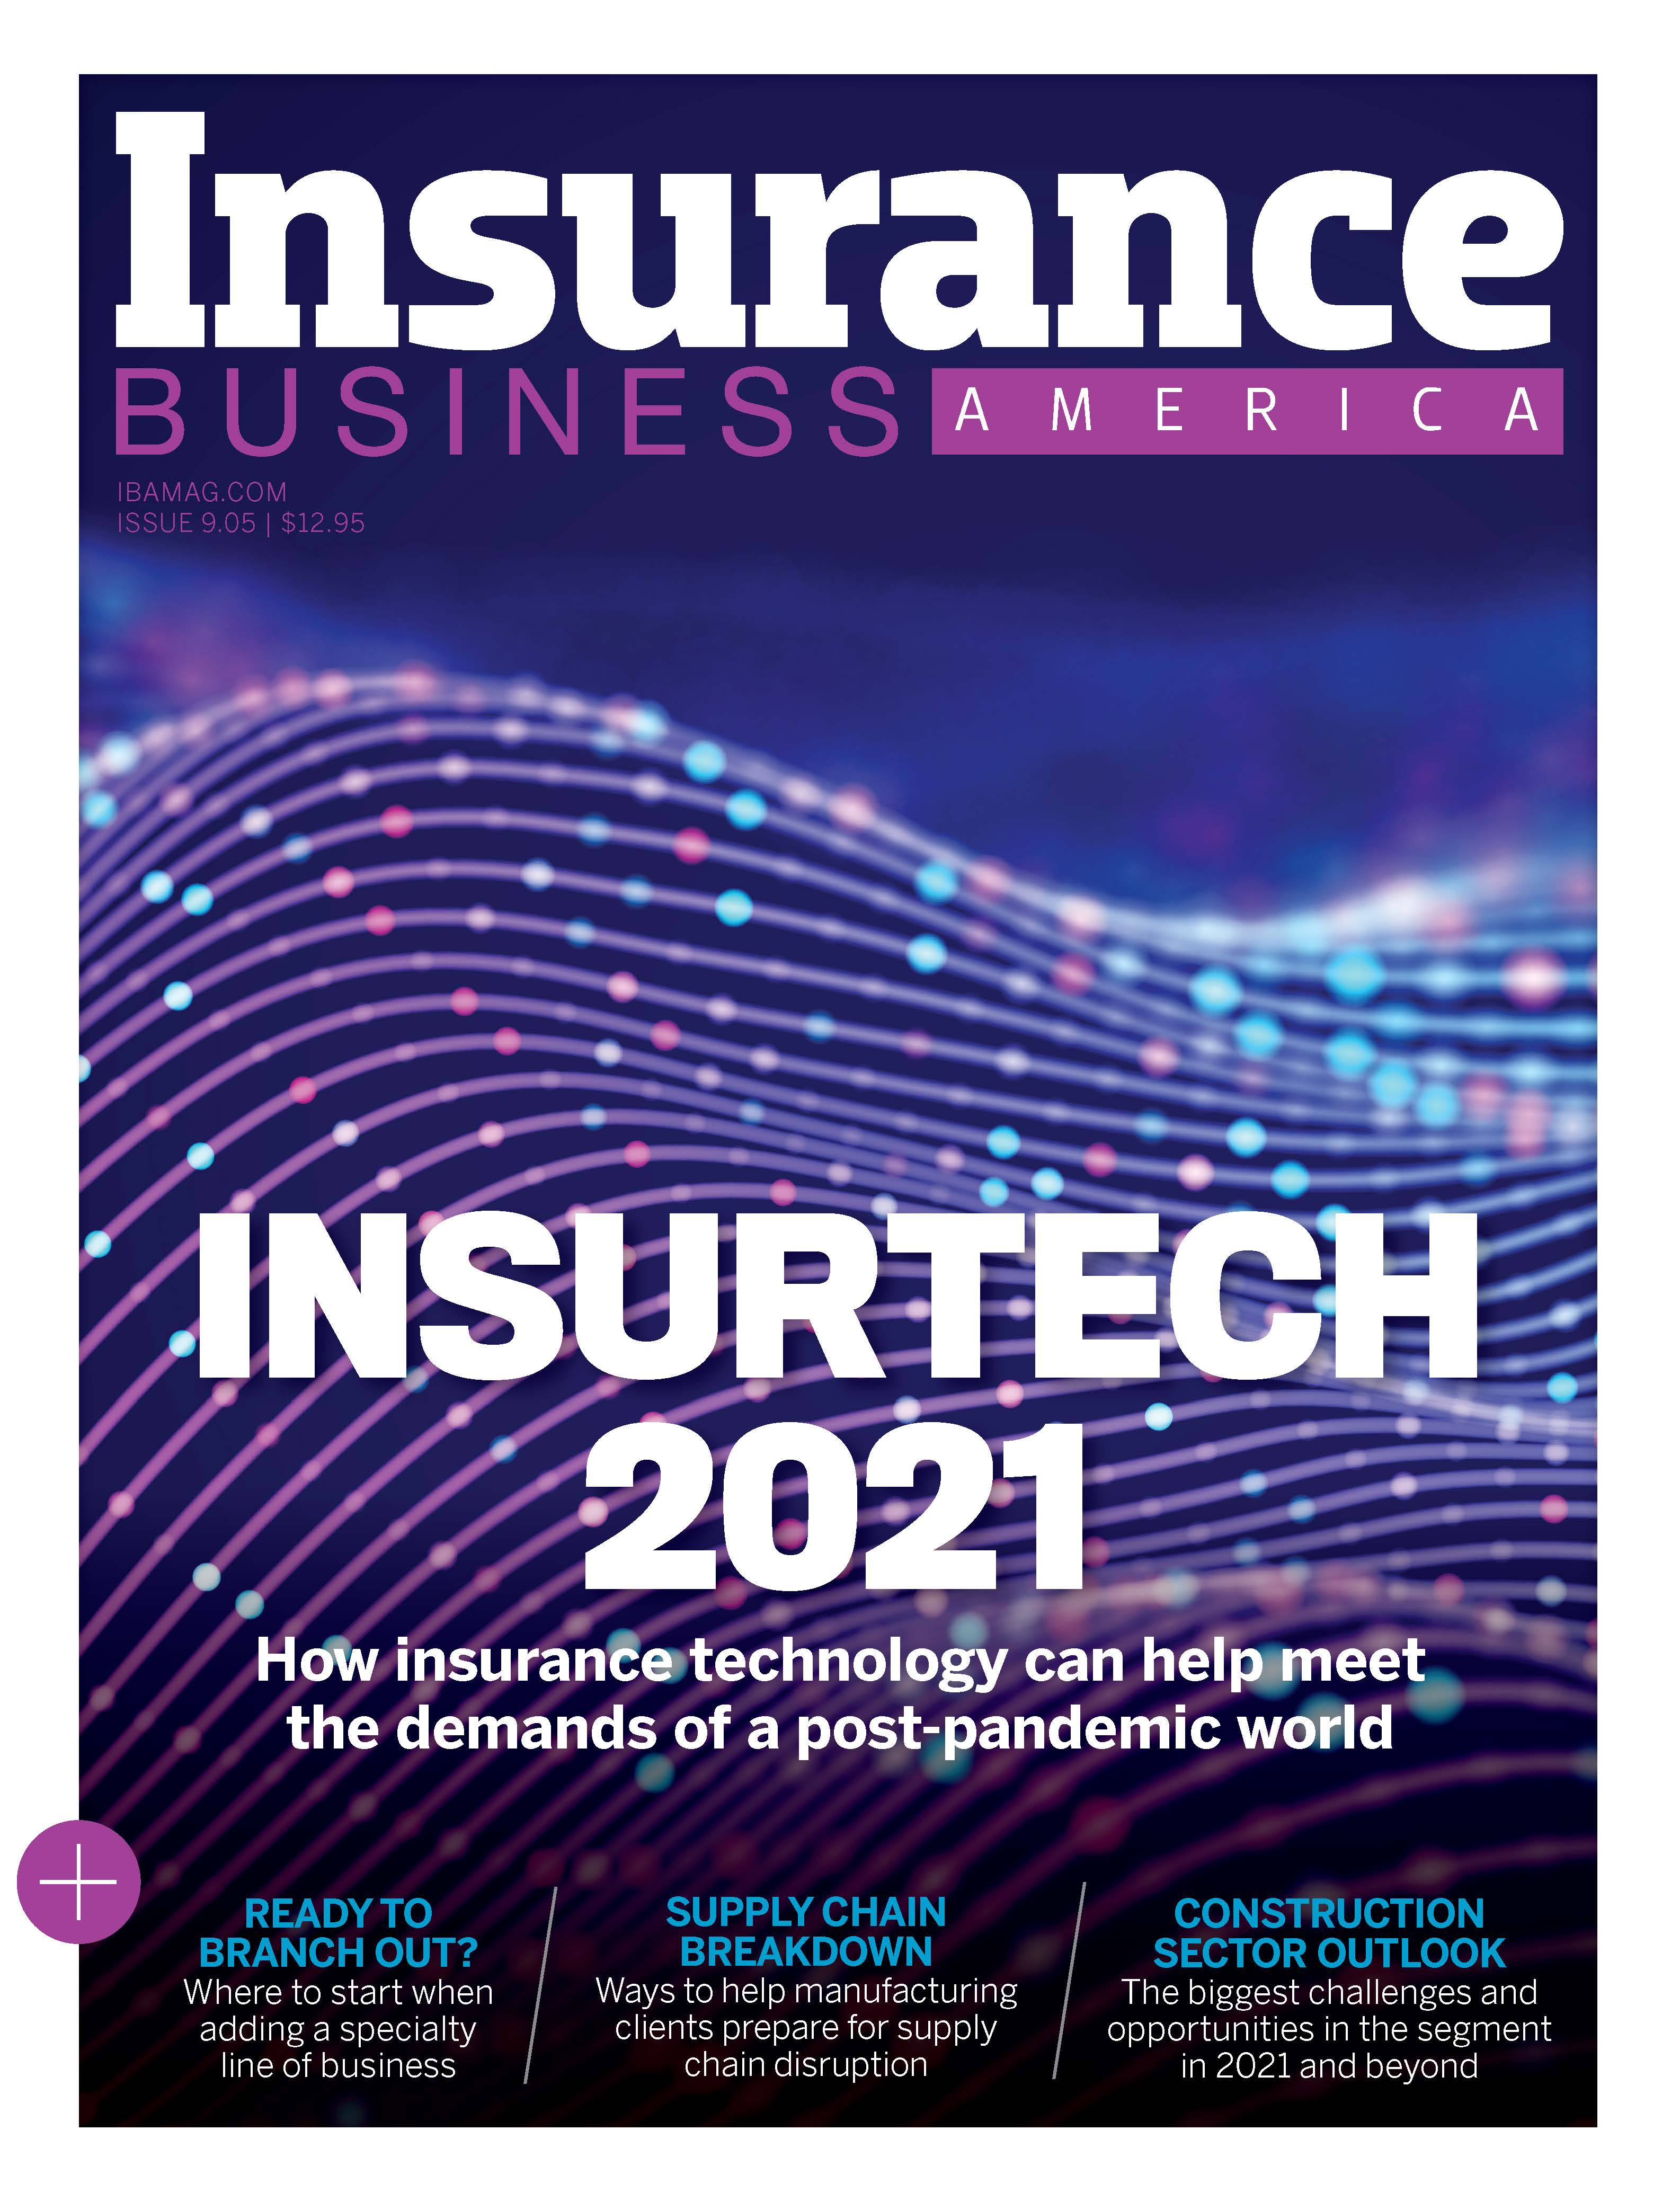 Insurance Business America issue 9.05